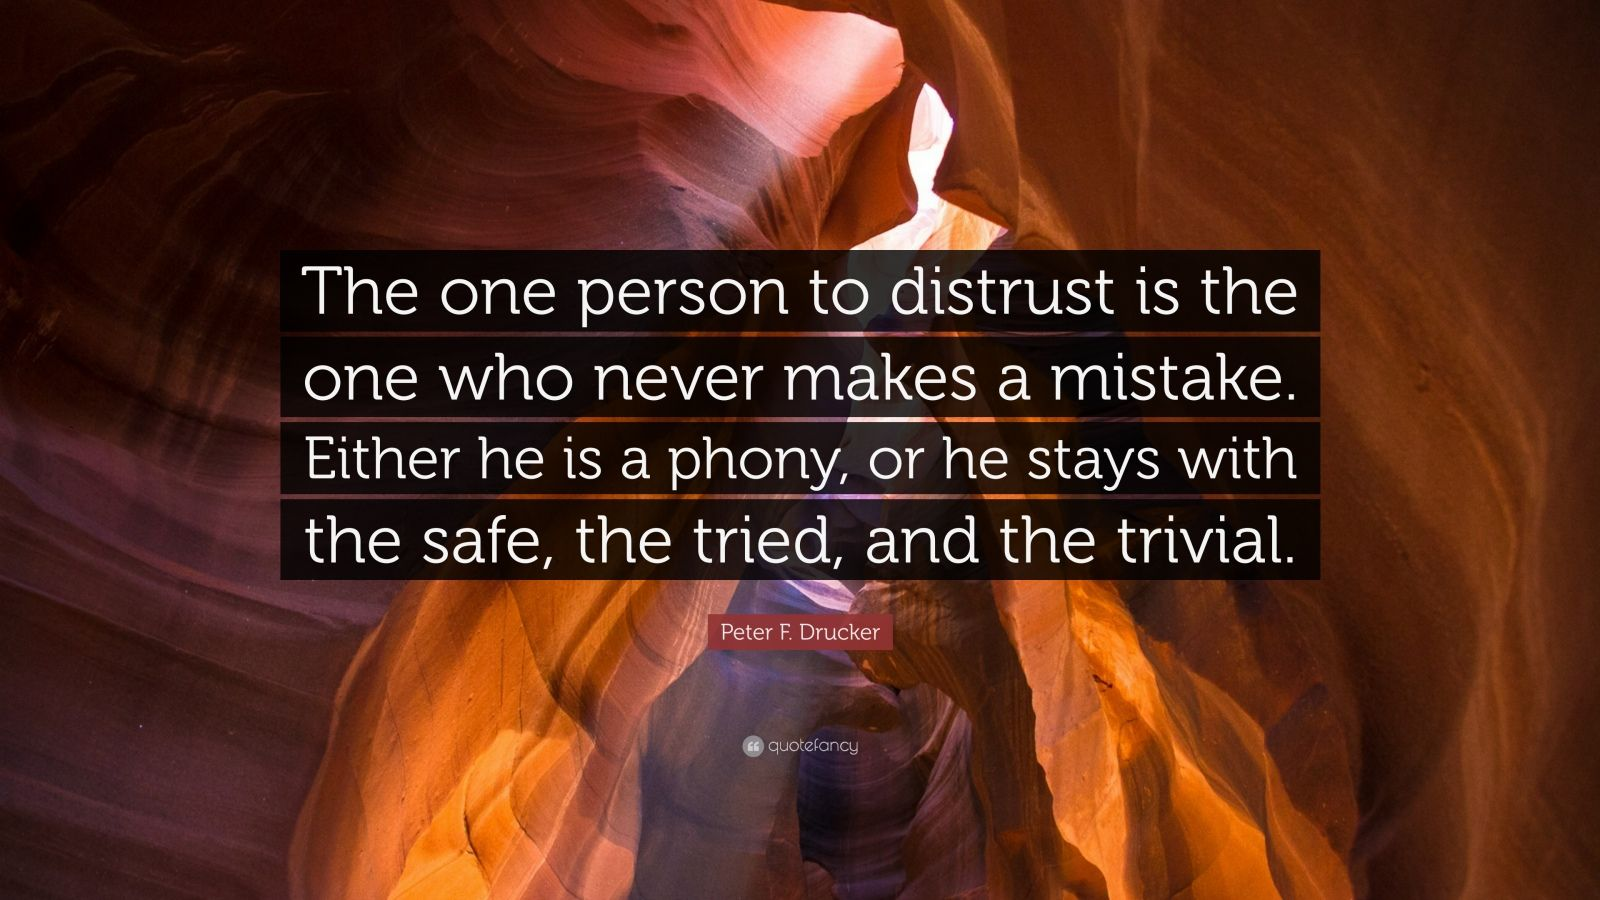 """Peter F. Drucker Quote: """"The one person to distrust is the one who never makes a mistake. Either he is a phony, or he stays with the safe, the tried, and the trivial."""""""